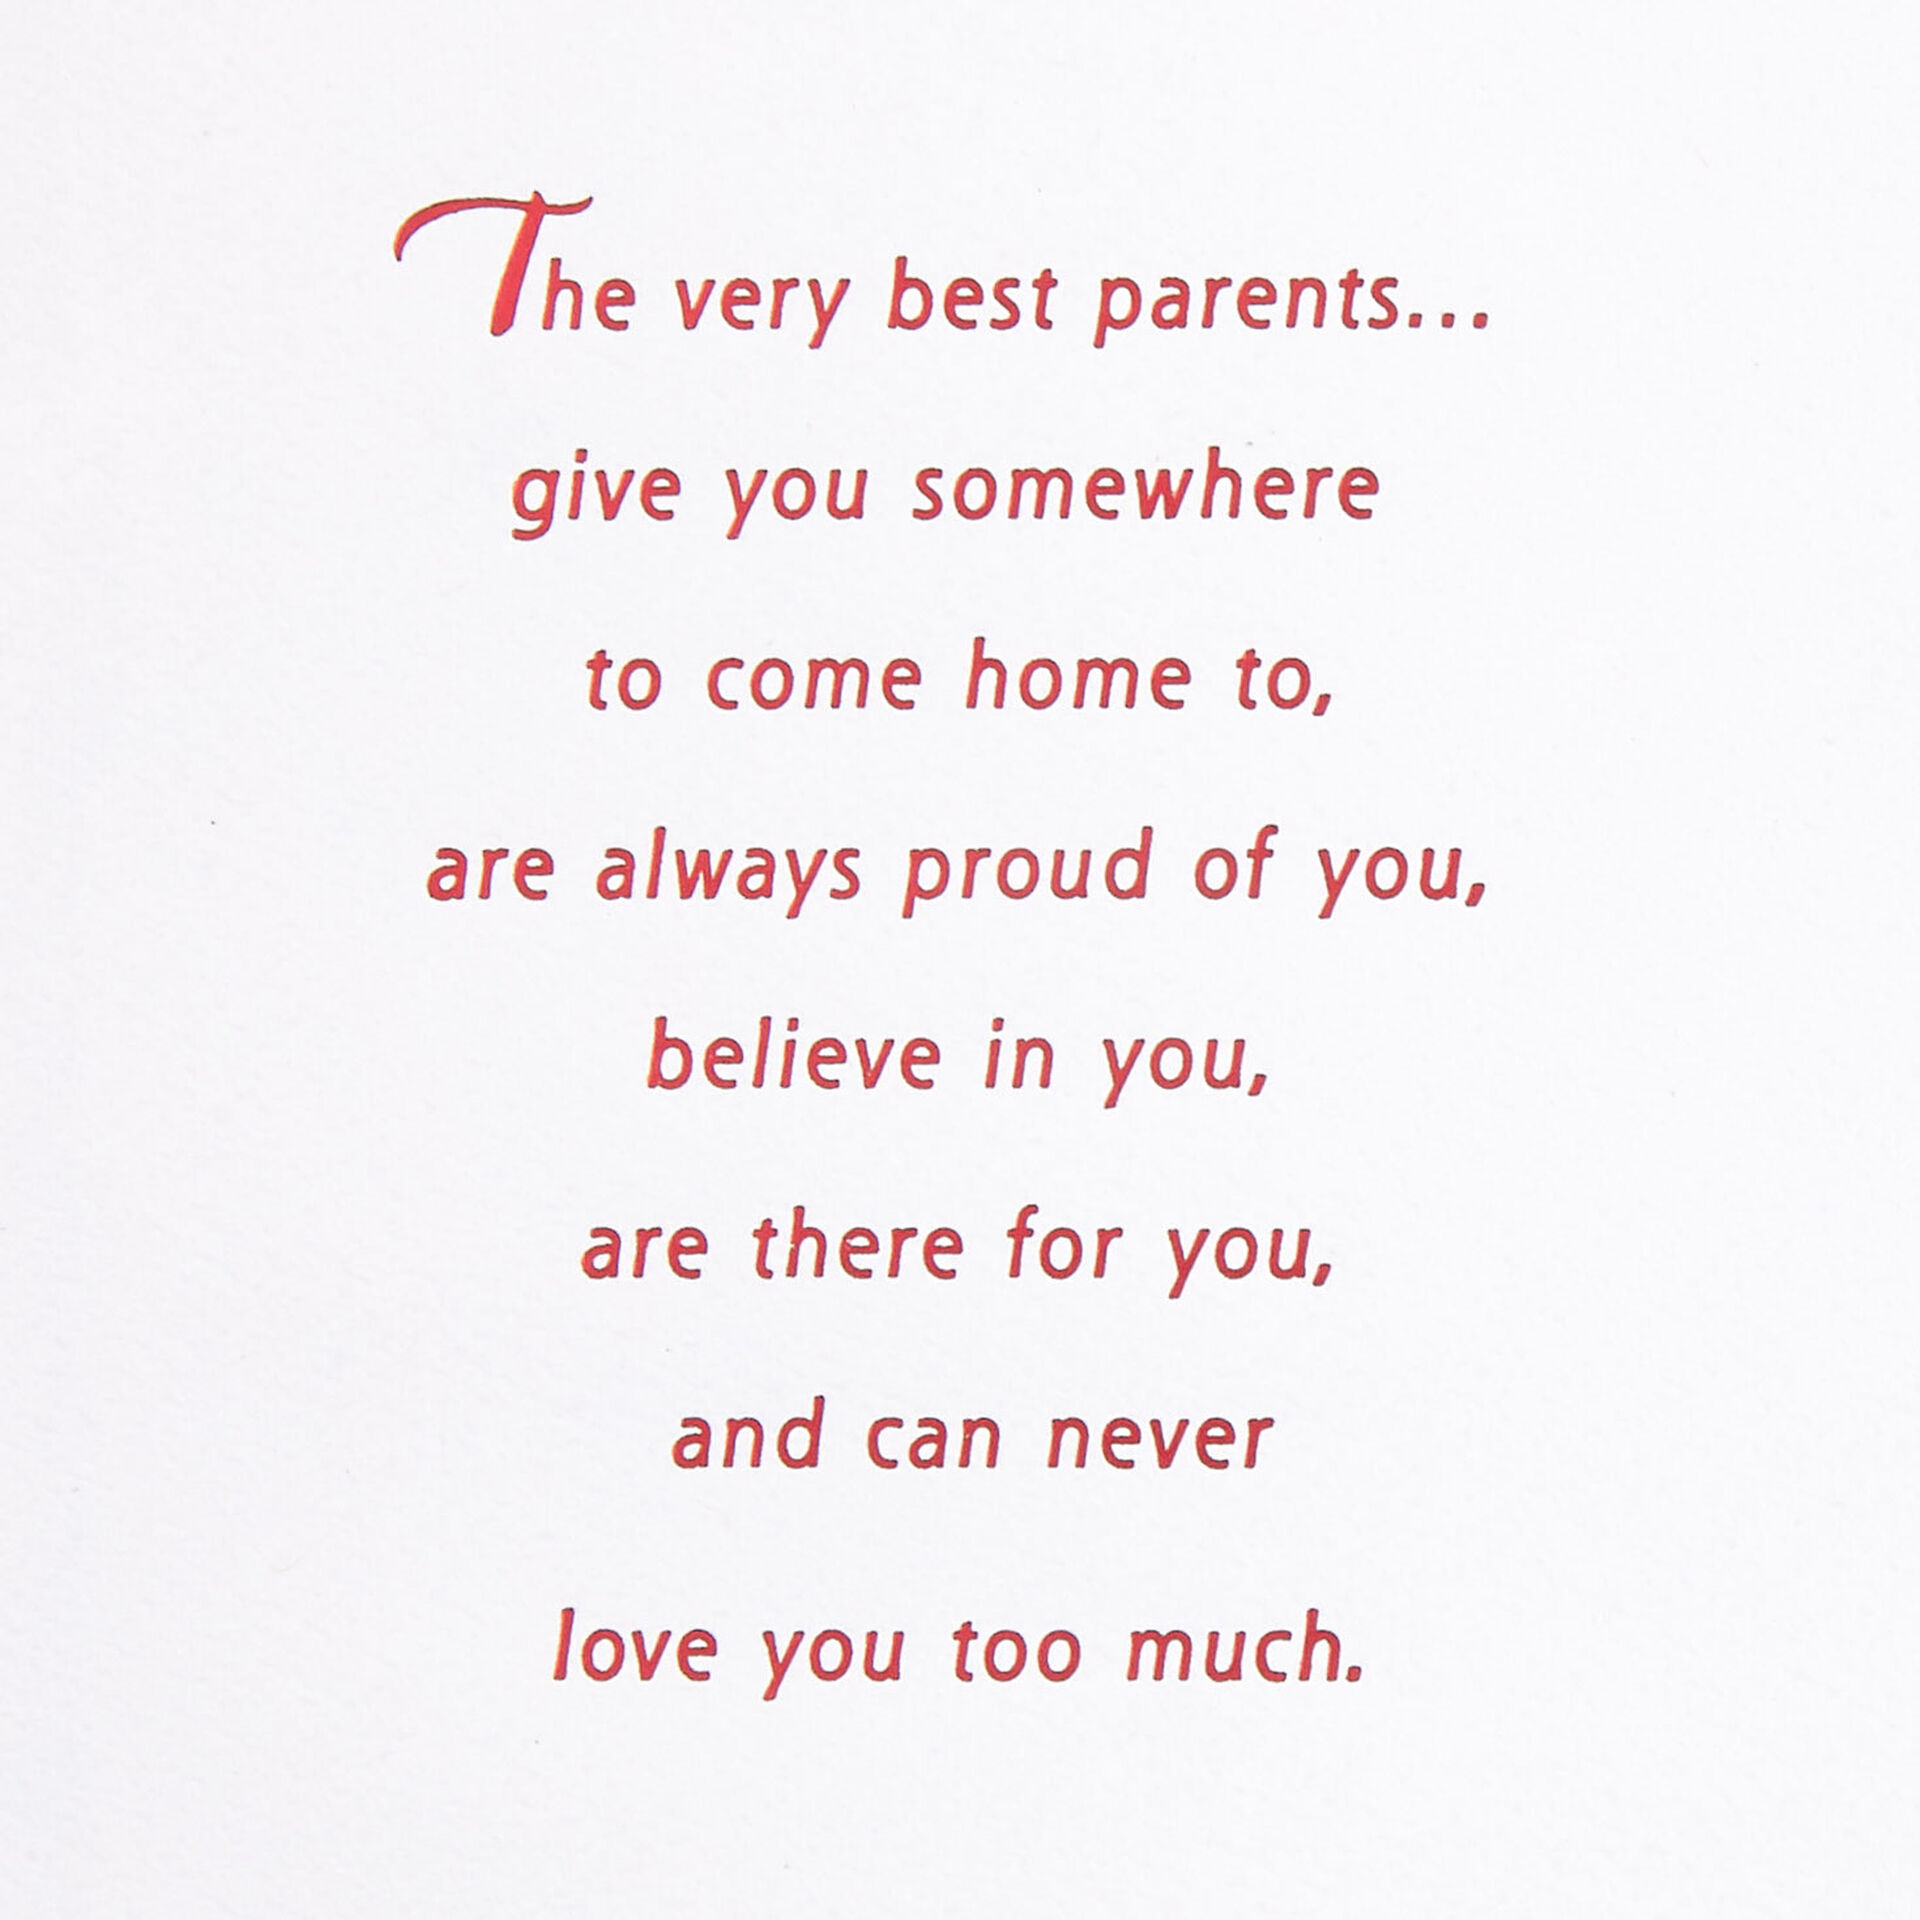 The Very Best Parents Christmas Card For Mom And Dad Greeting Cards Hallmark